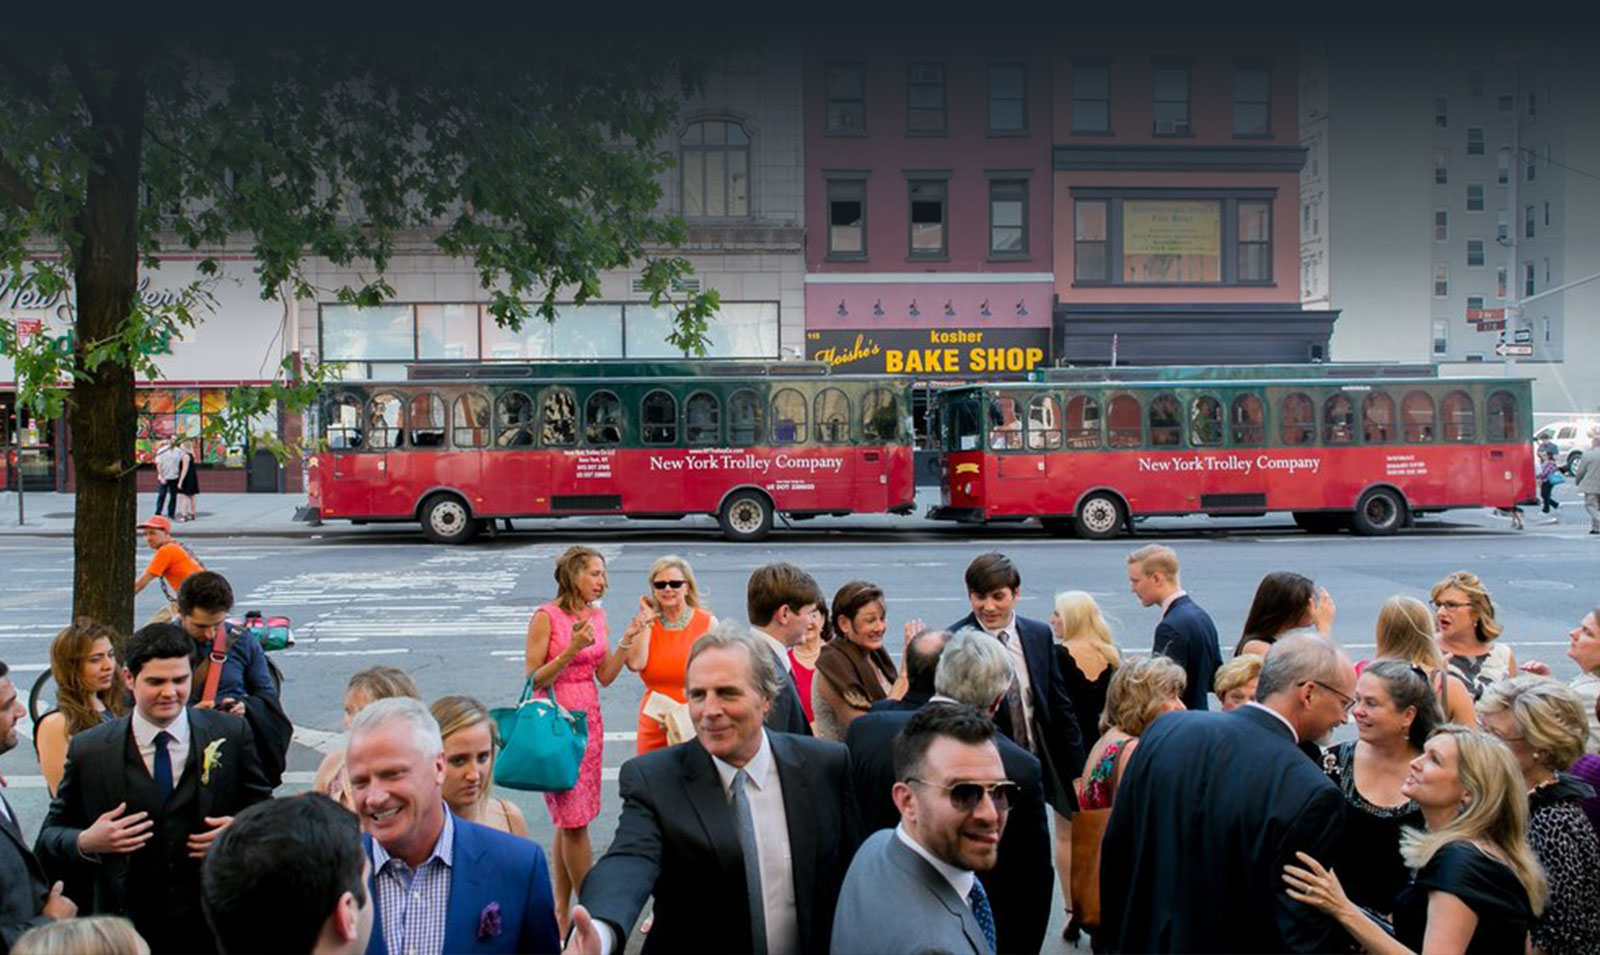 NYC Party Bus in manhattan